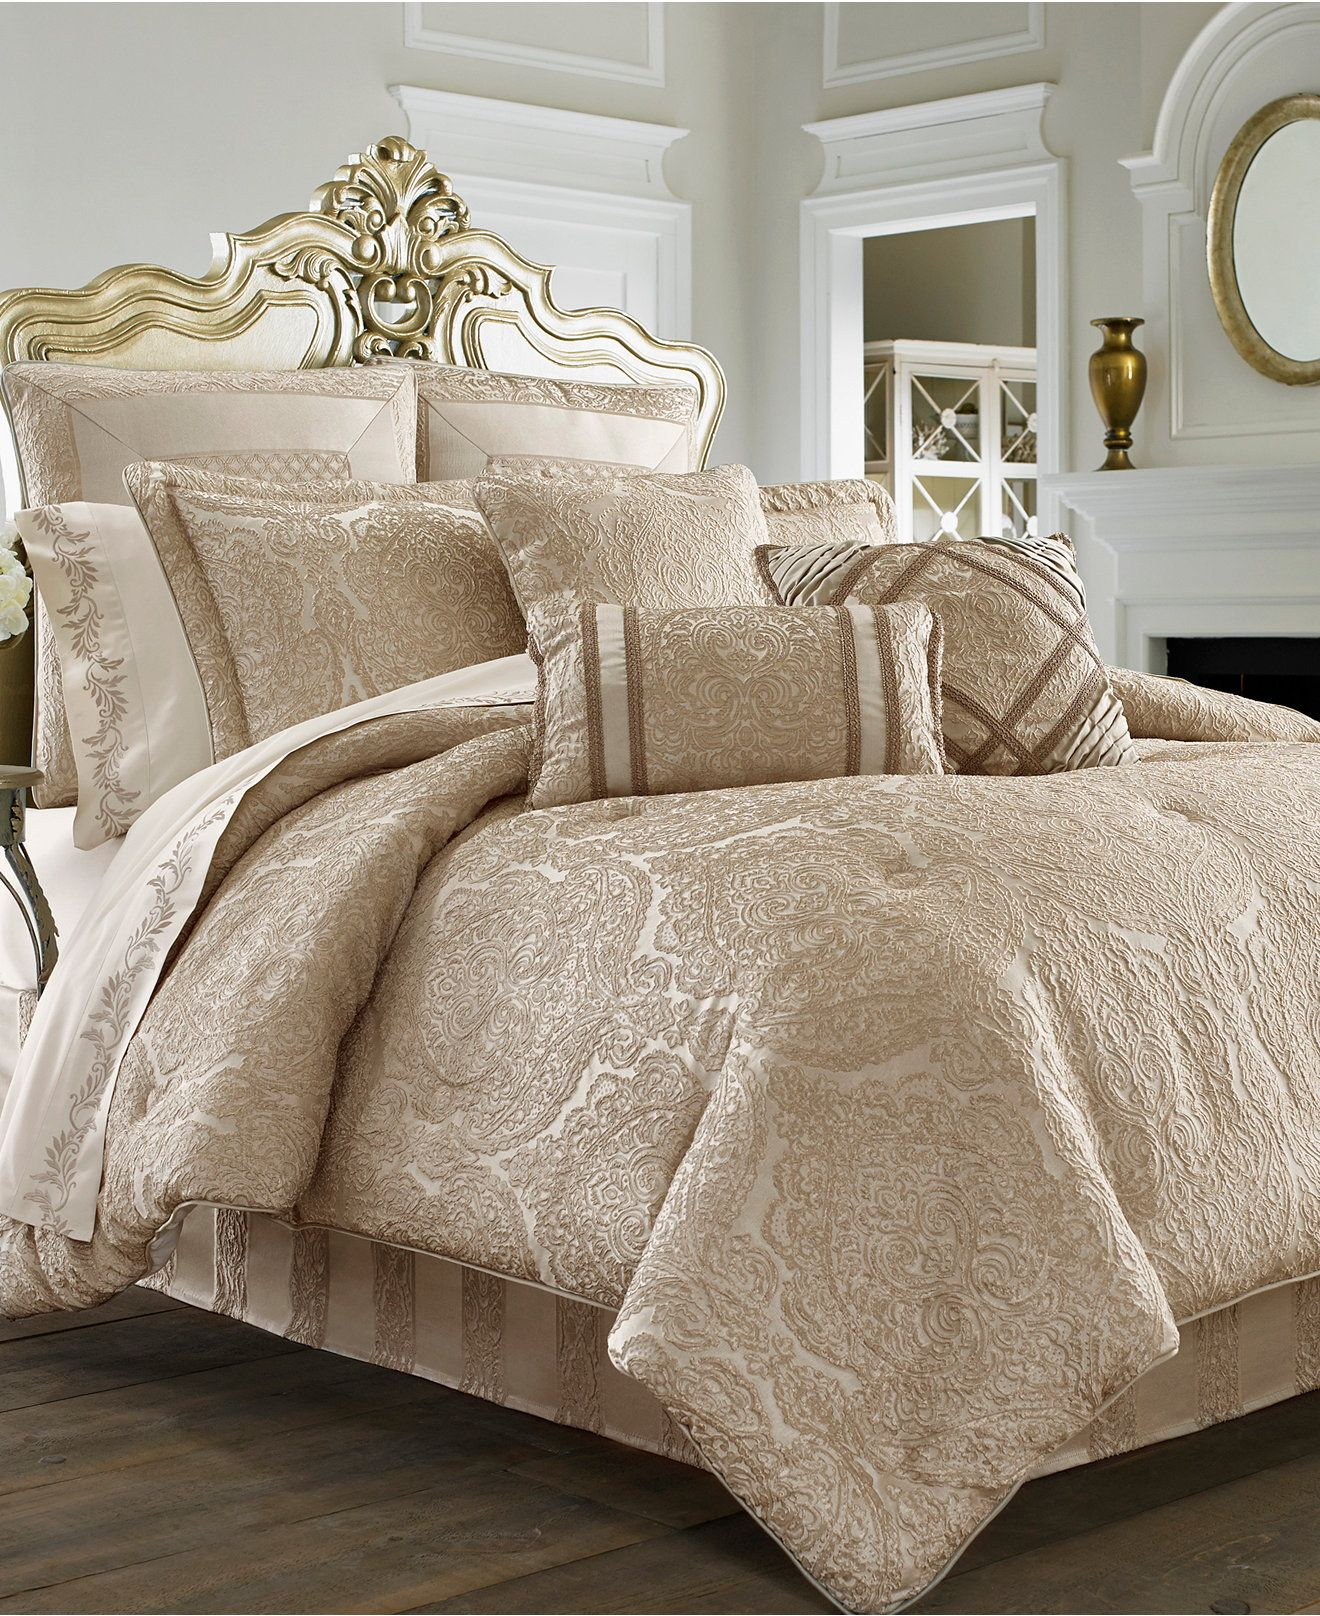 J Queen New York Renaissance forter Sets Bedding Collections